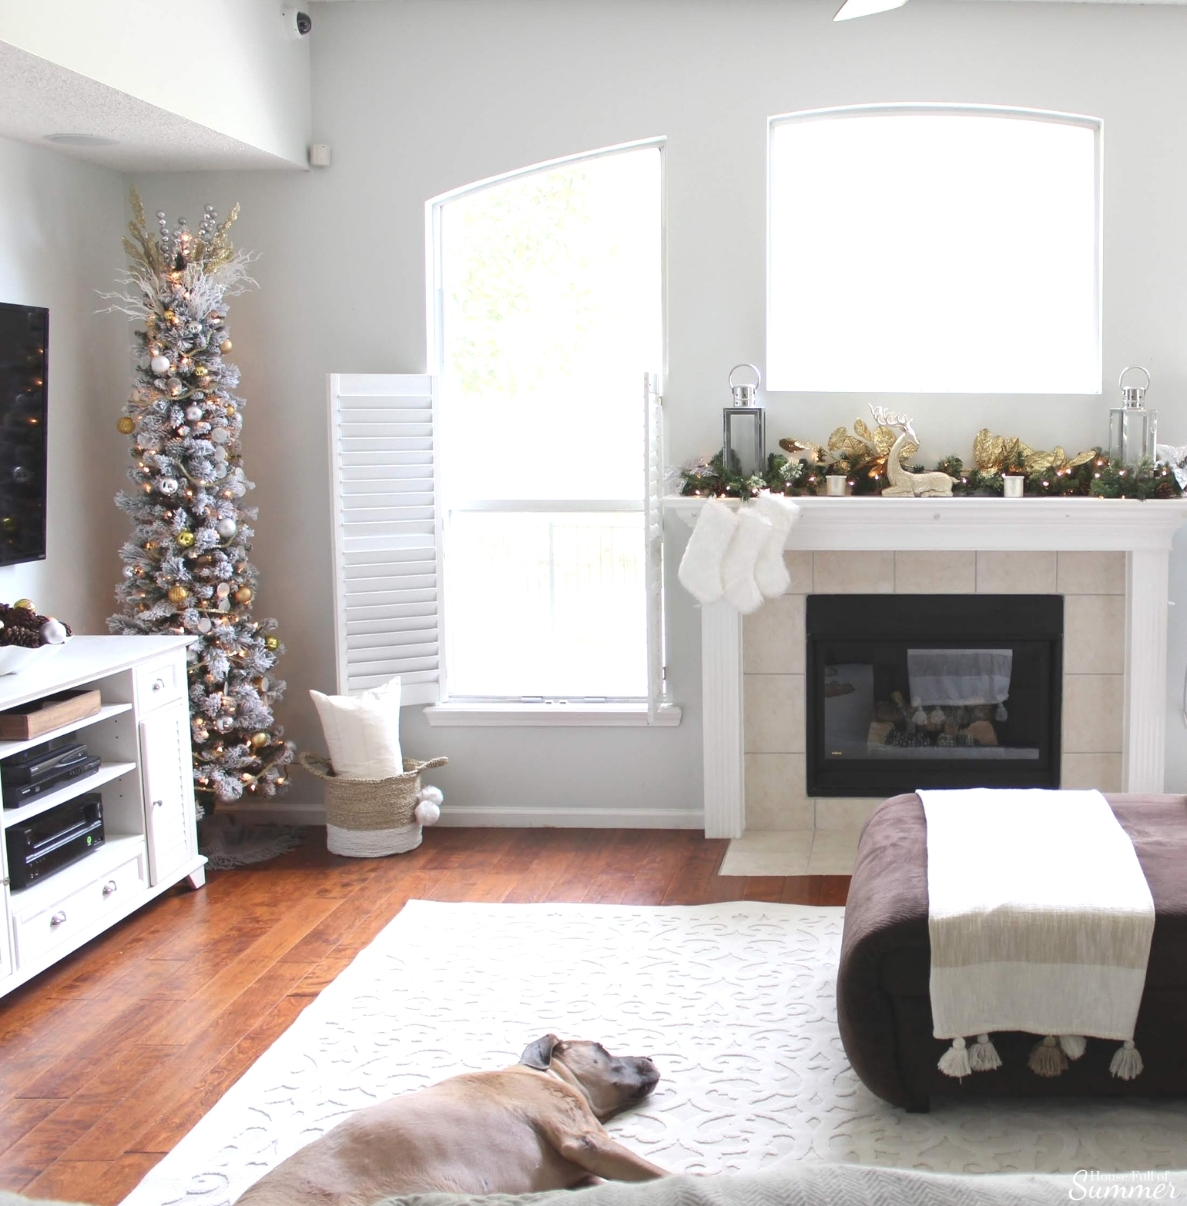 A Charming Southern Christmas Home Tour {Part 2}   House Full of Summer - Master Bedroom Christmas decor ideas, navy Christmas decorations, blue and white holiday decor, foyer, Gold Magnolias and Southern influences in Christmas decor, neutral Christmas decorating, foyer, living room, Christmas centerpiece, greenery, DIY holiday arrangement, coastal decor, Southern Christmas tree ornament ideas tassel ornaments, white durable rug, rugs for dogs, indoor outdoor rug, boucle rug, family room, Christmas mantle